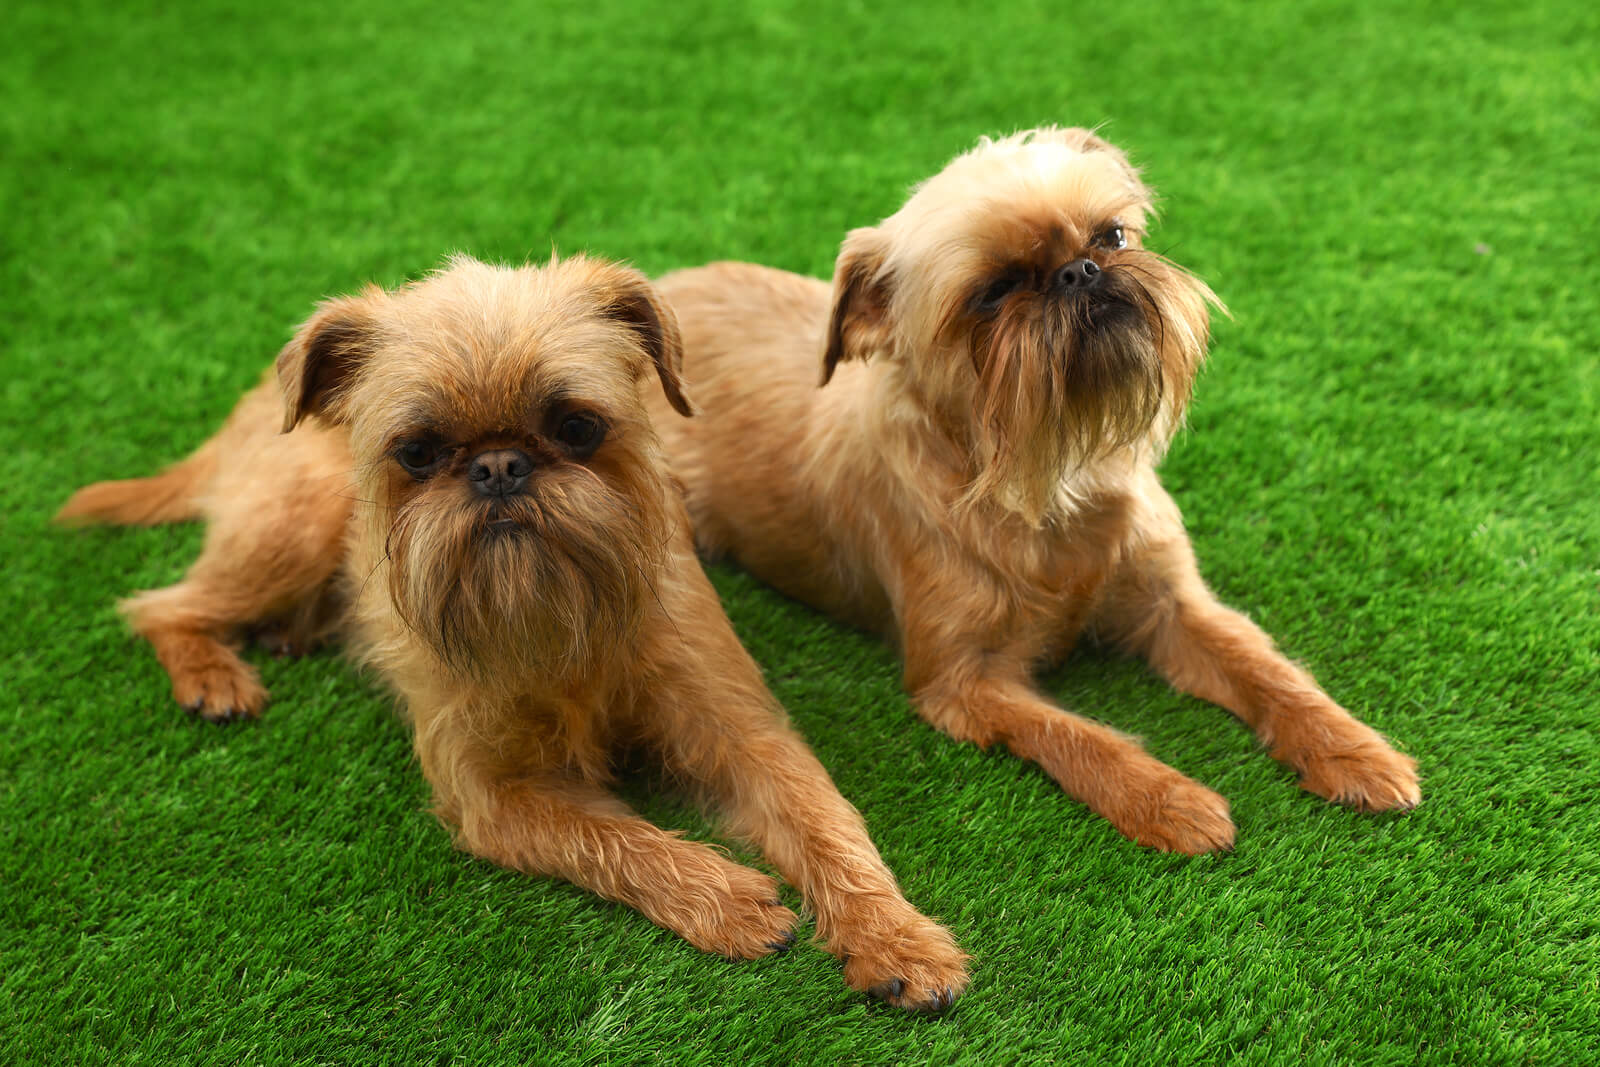 Studio portrait of funny Brussels Griffon dogs on green grass